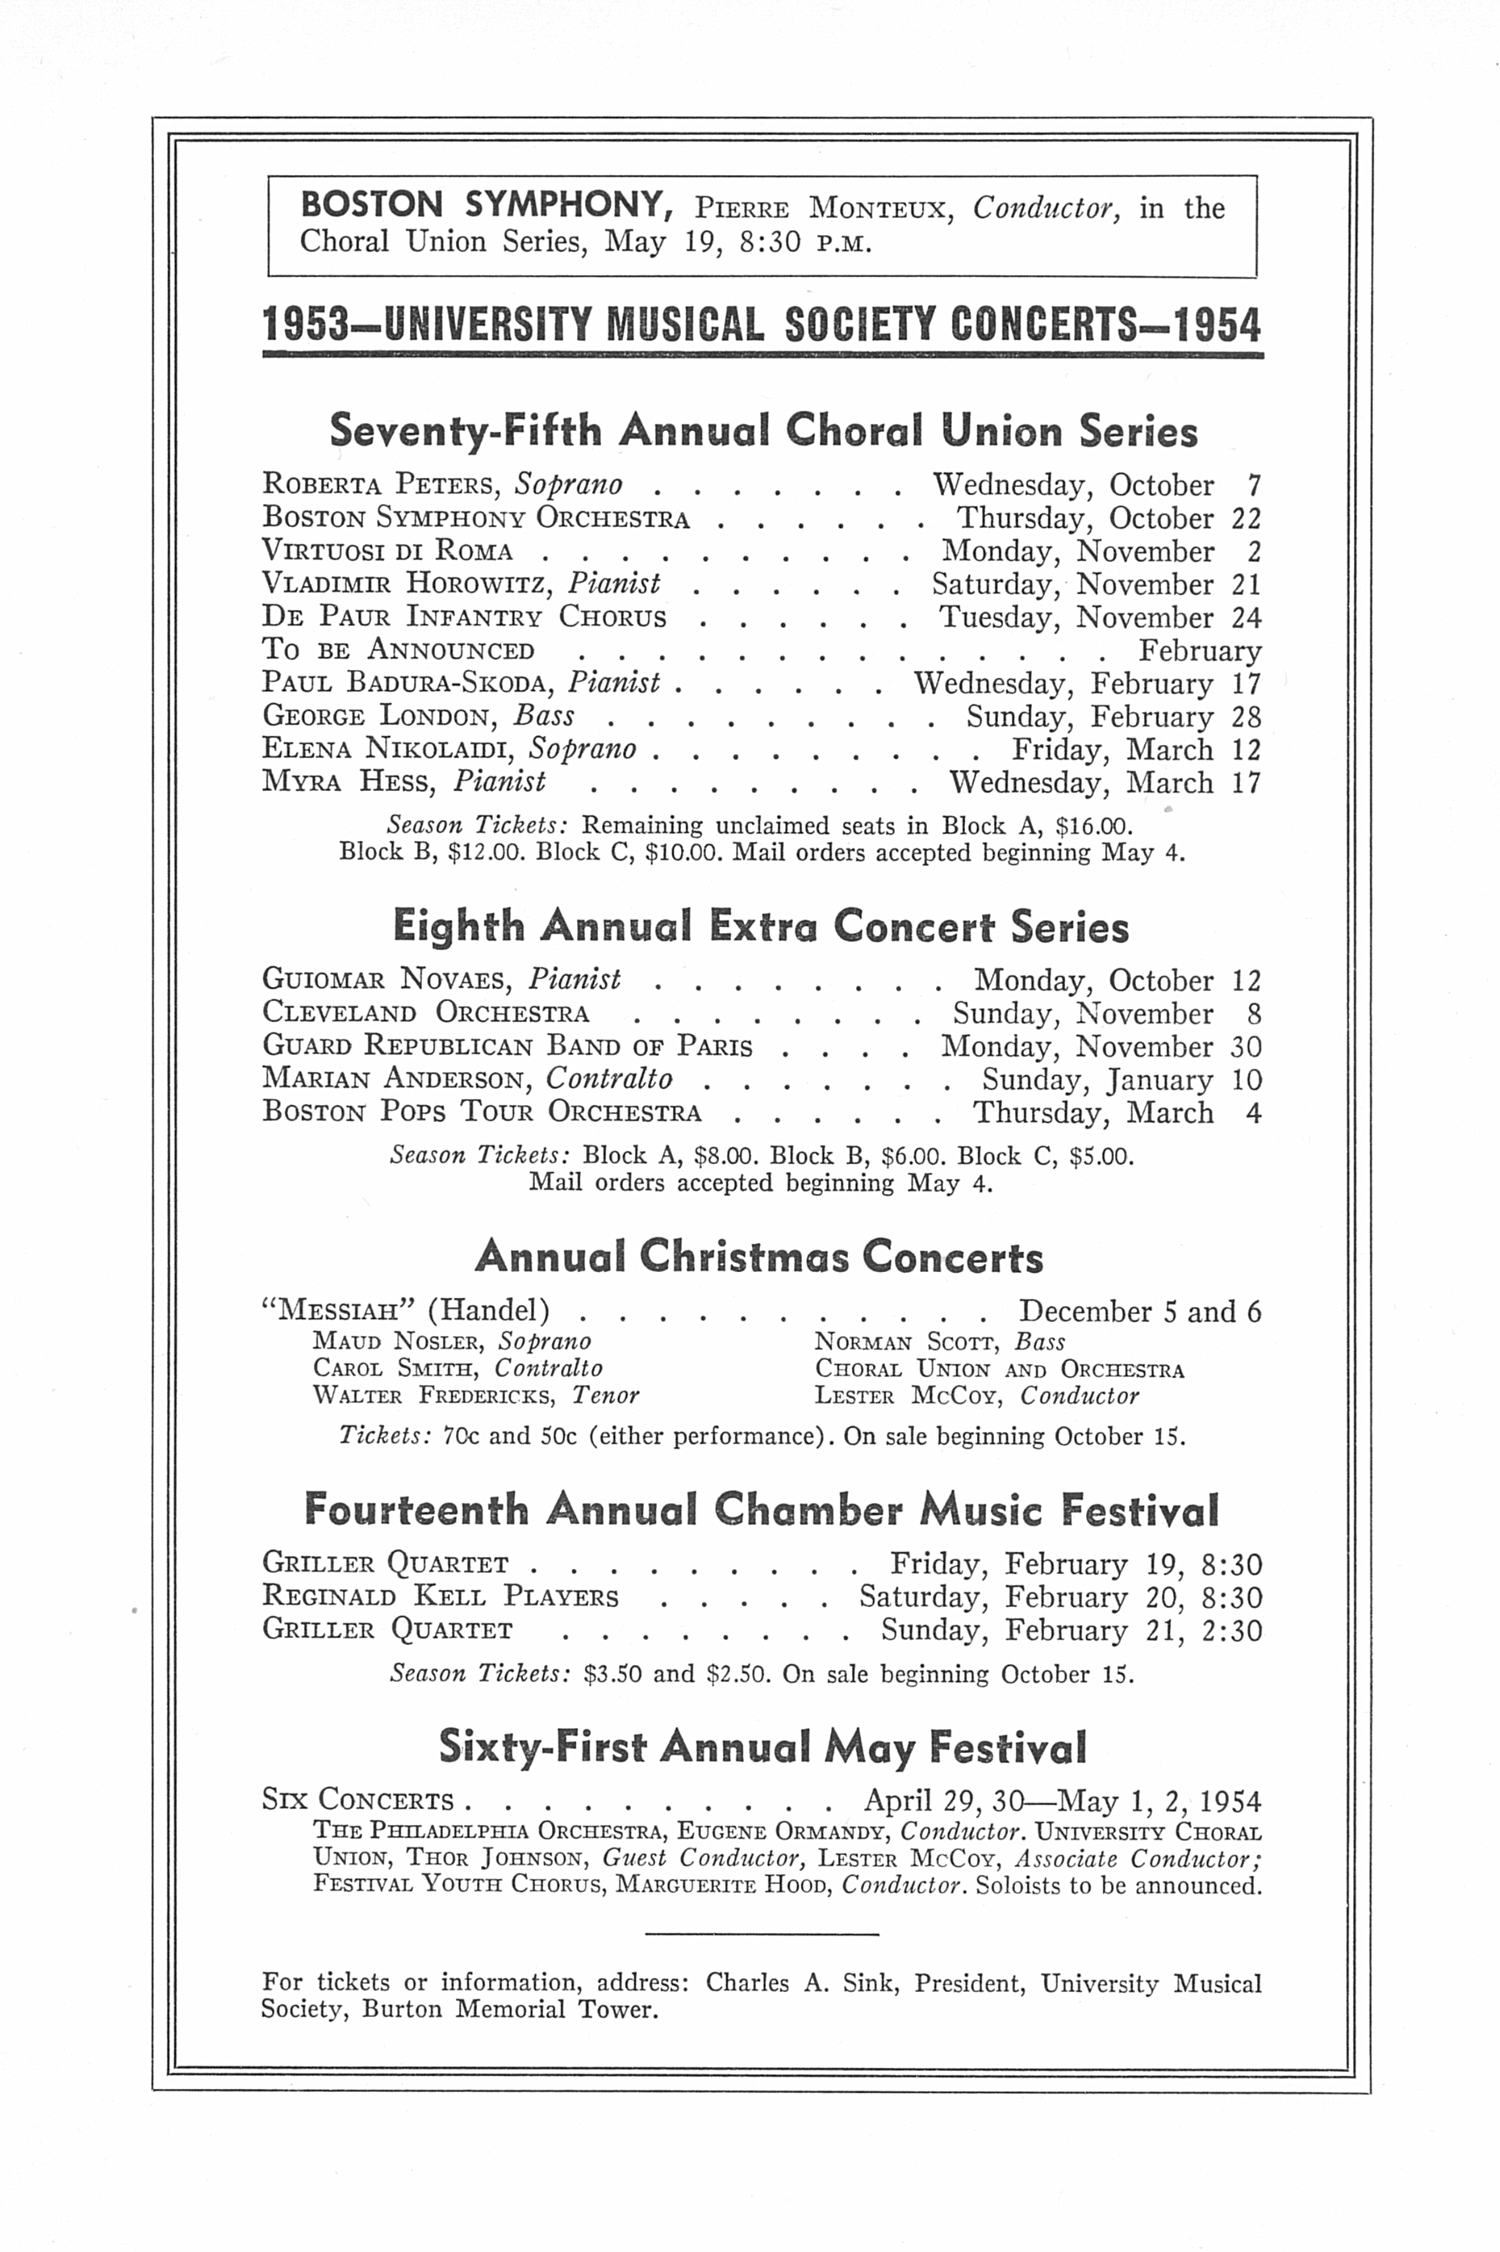 UMS Concert Program, May 3, 1953: Sixtieth Annual May Festival -- The Philadelphia Orchestra image